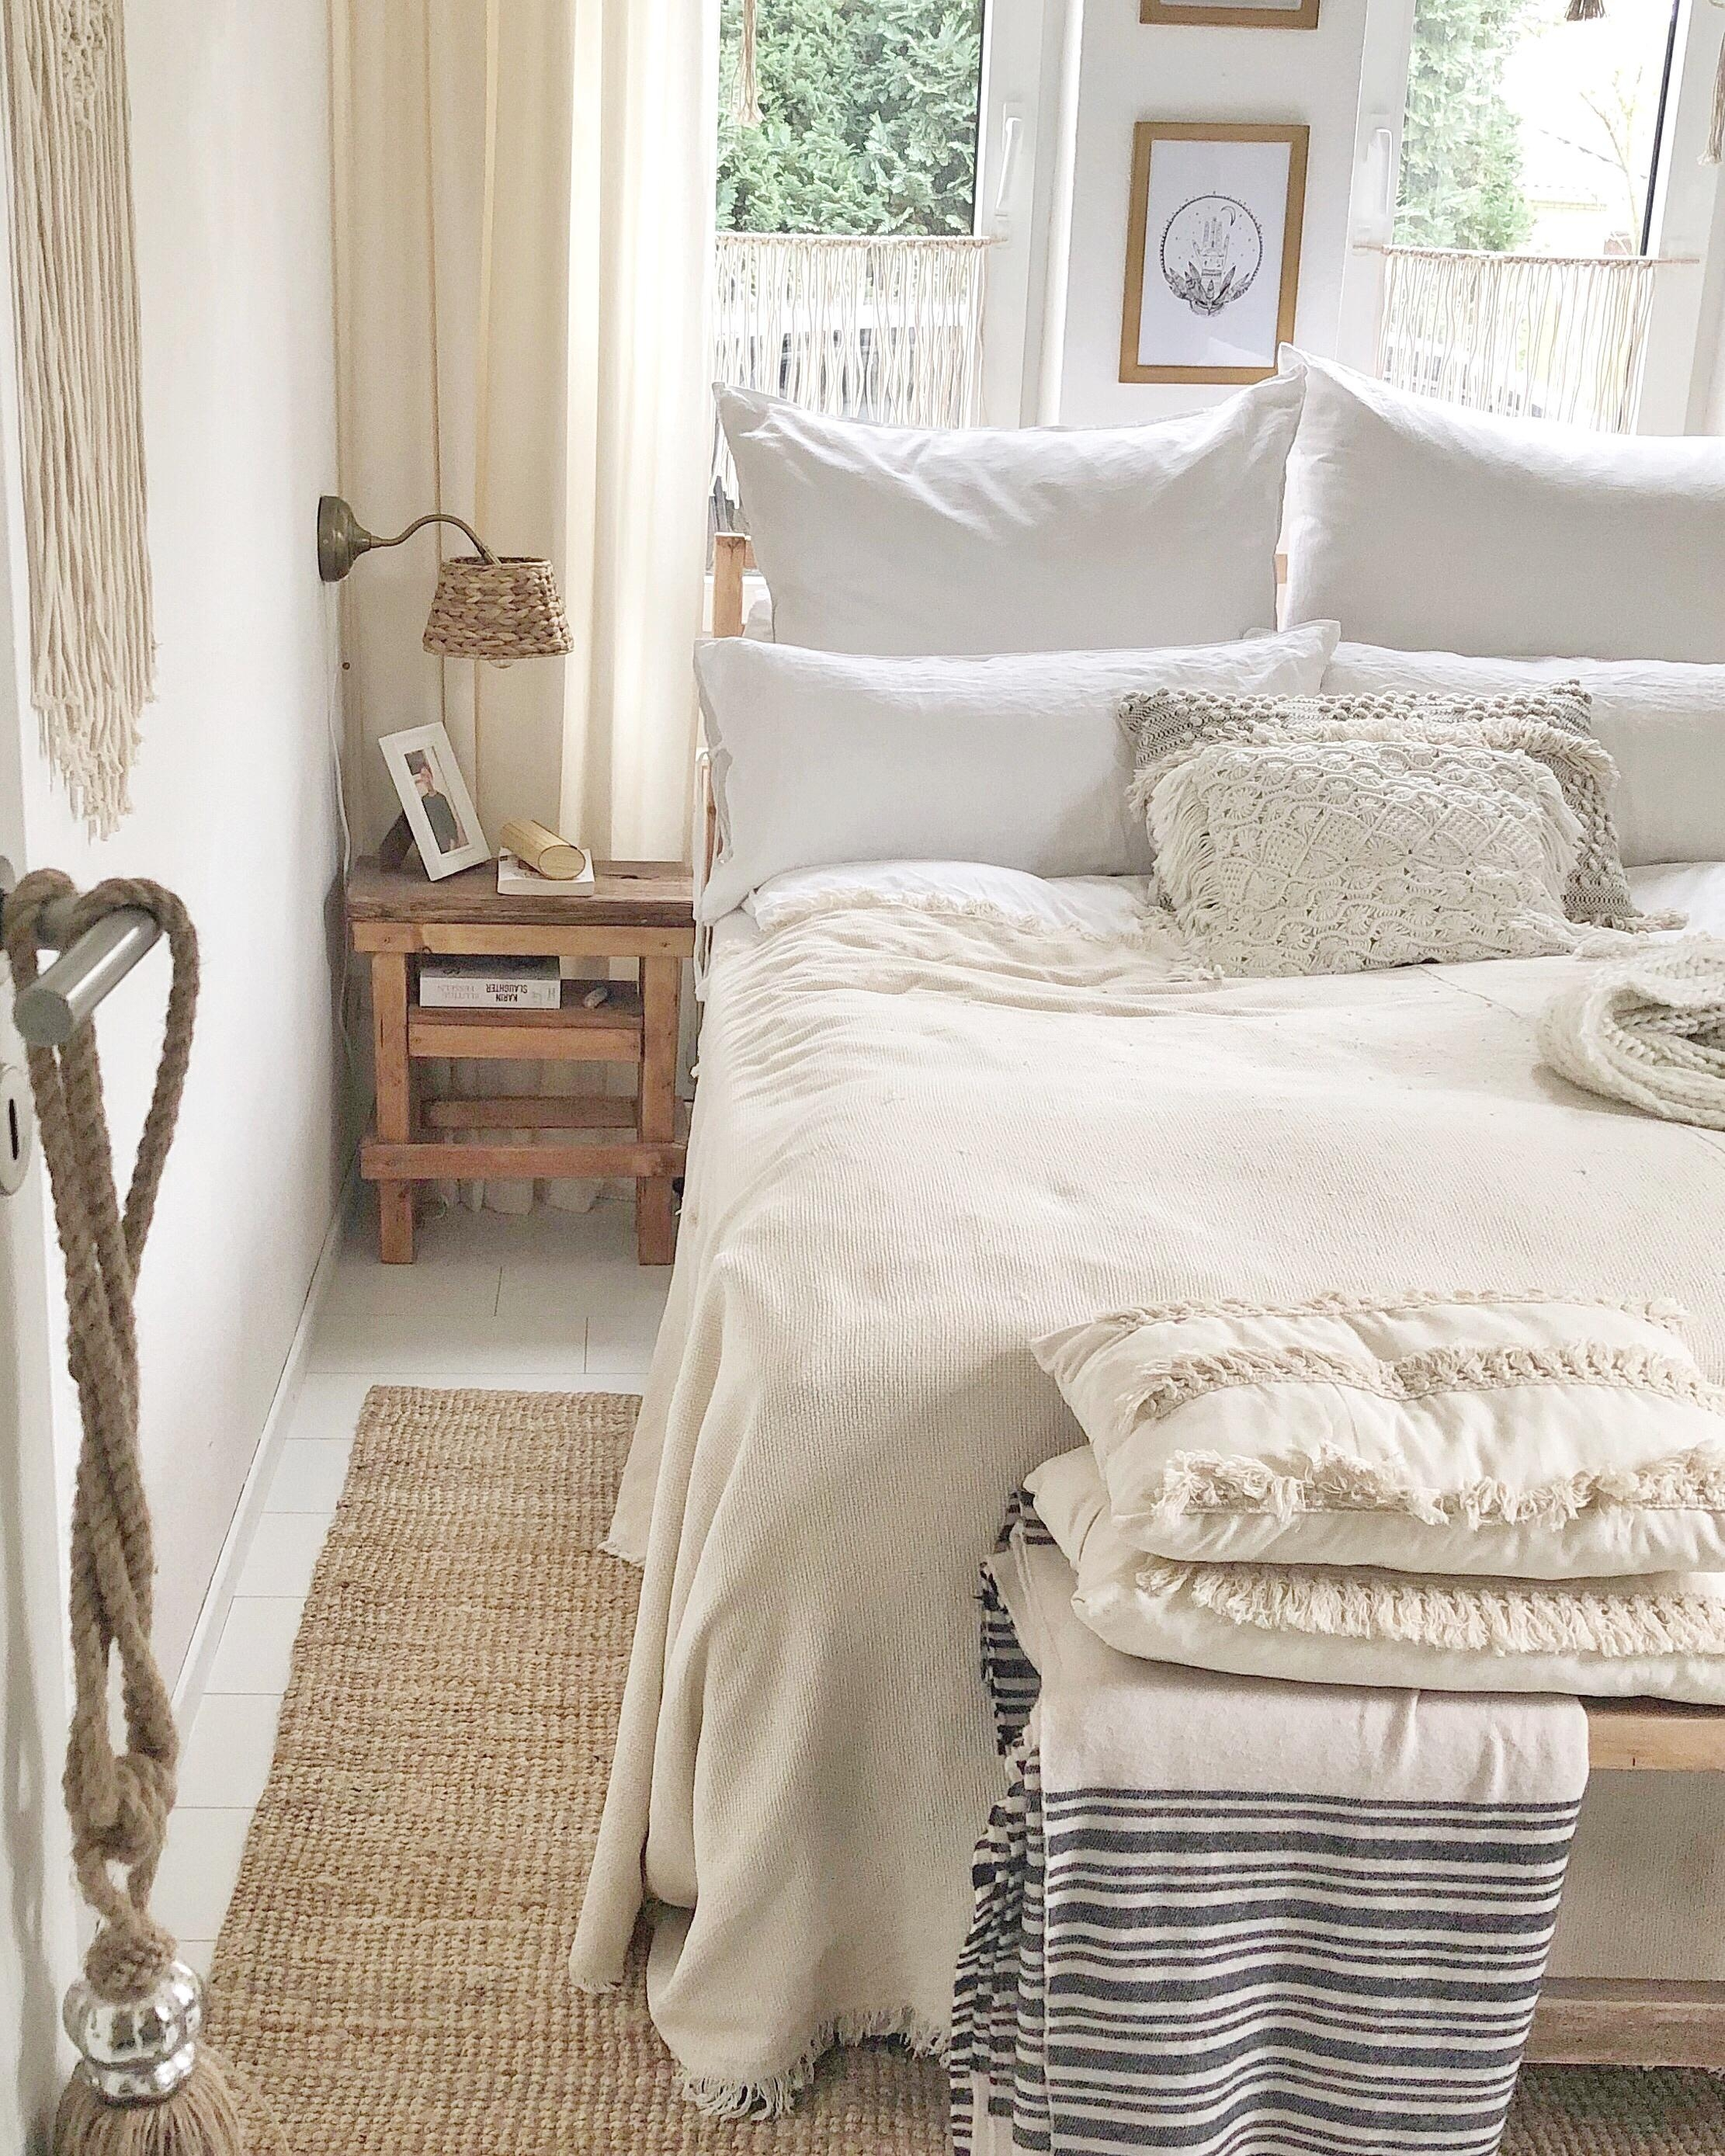 #bedroom#boho#scandi#cozy#myhome